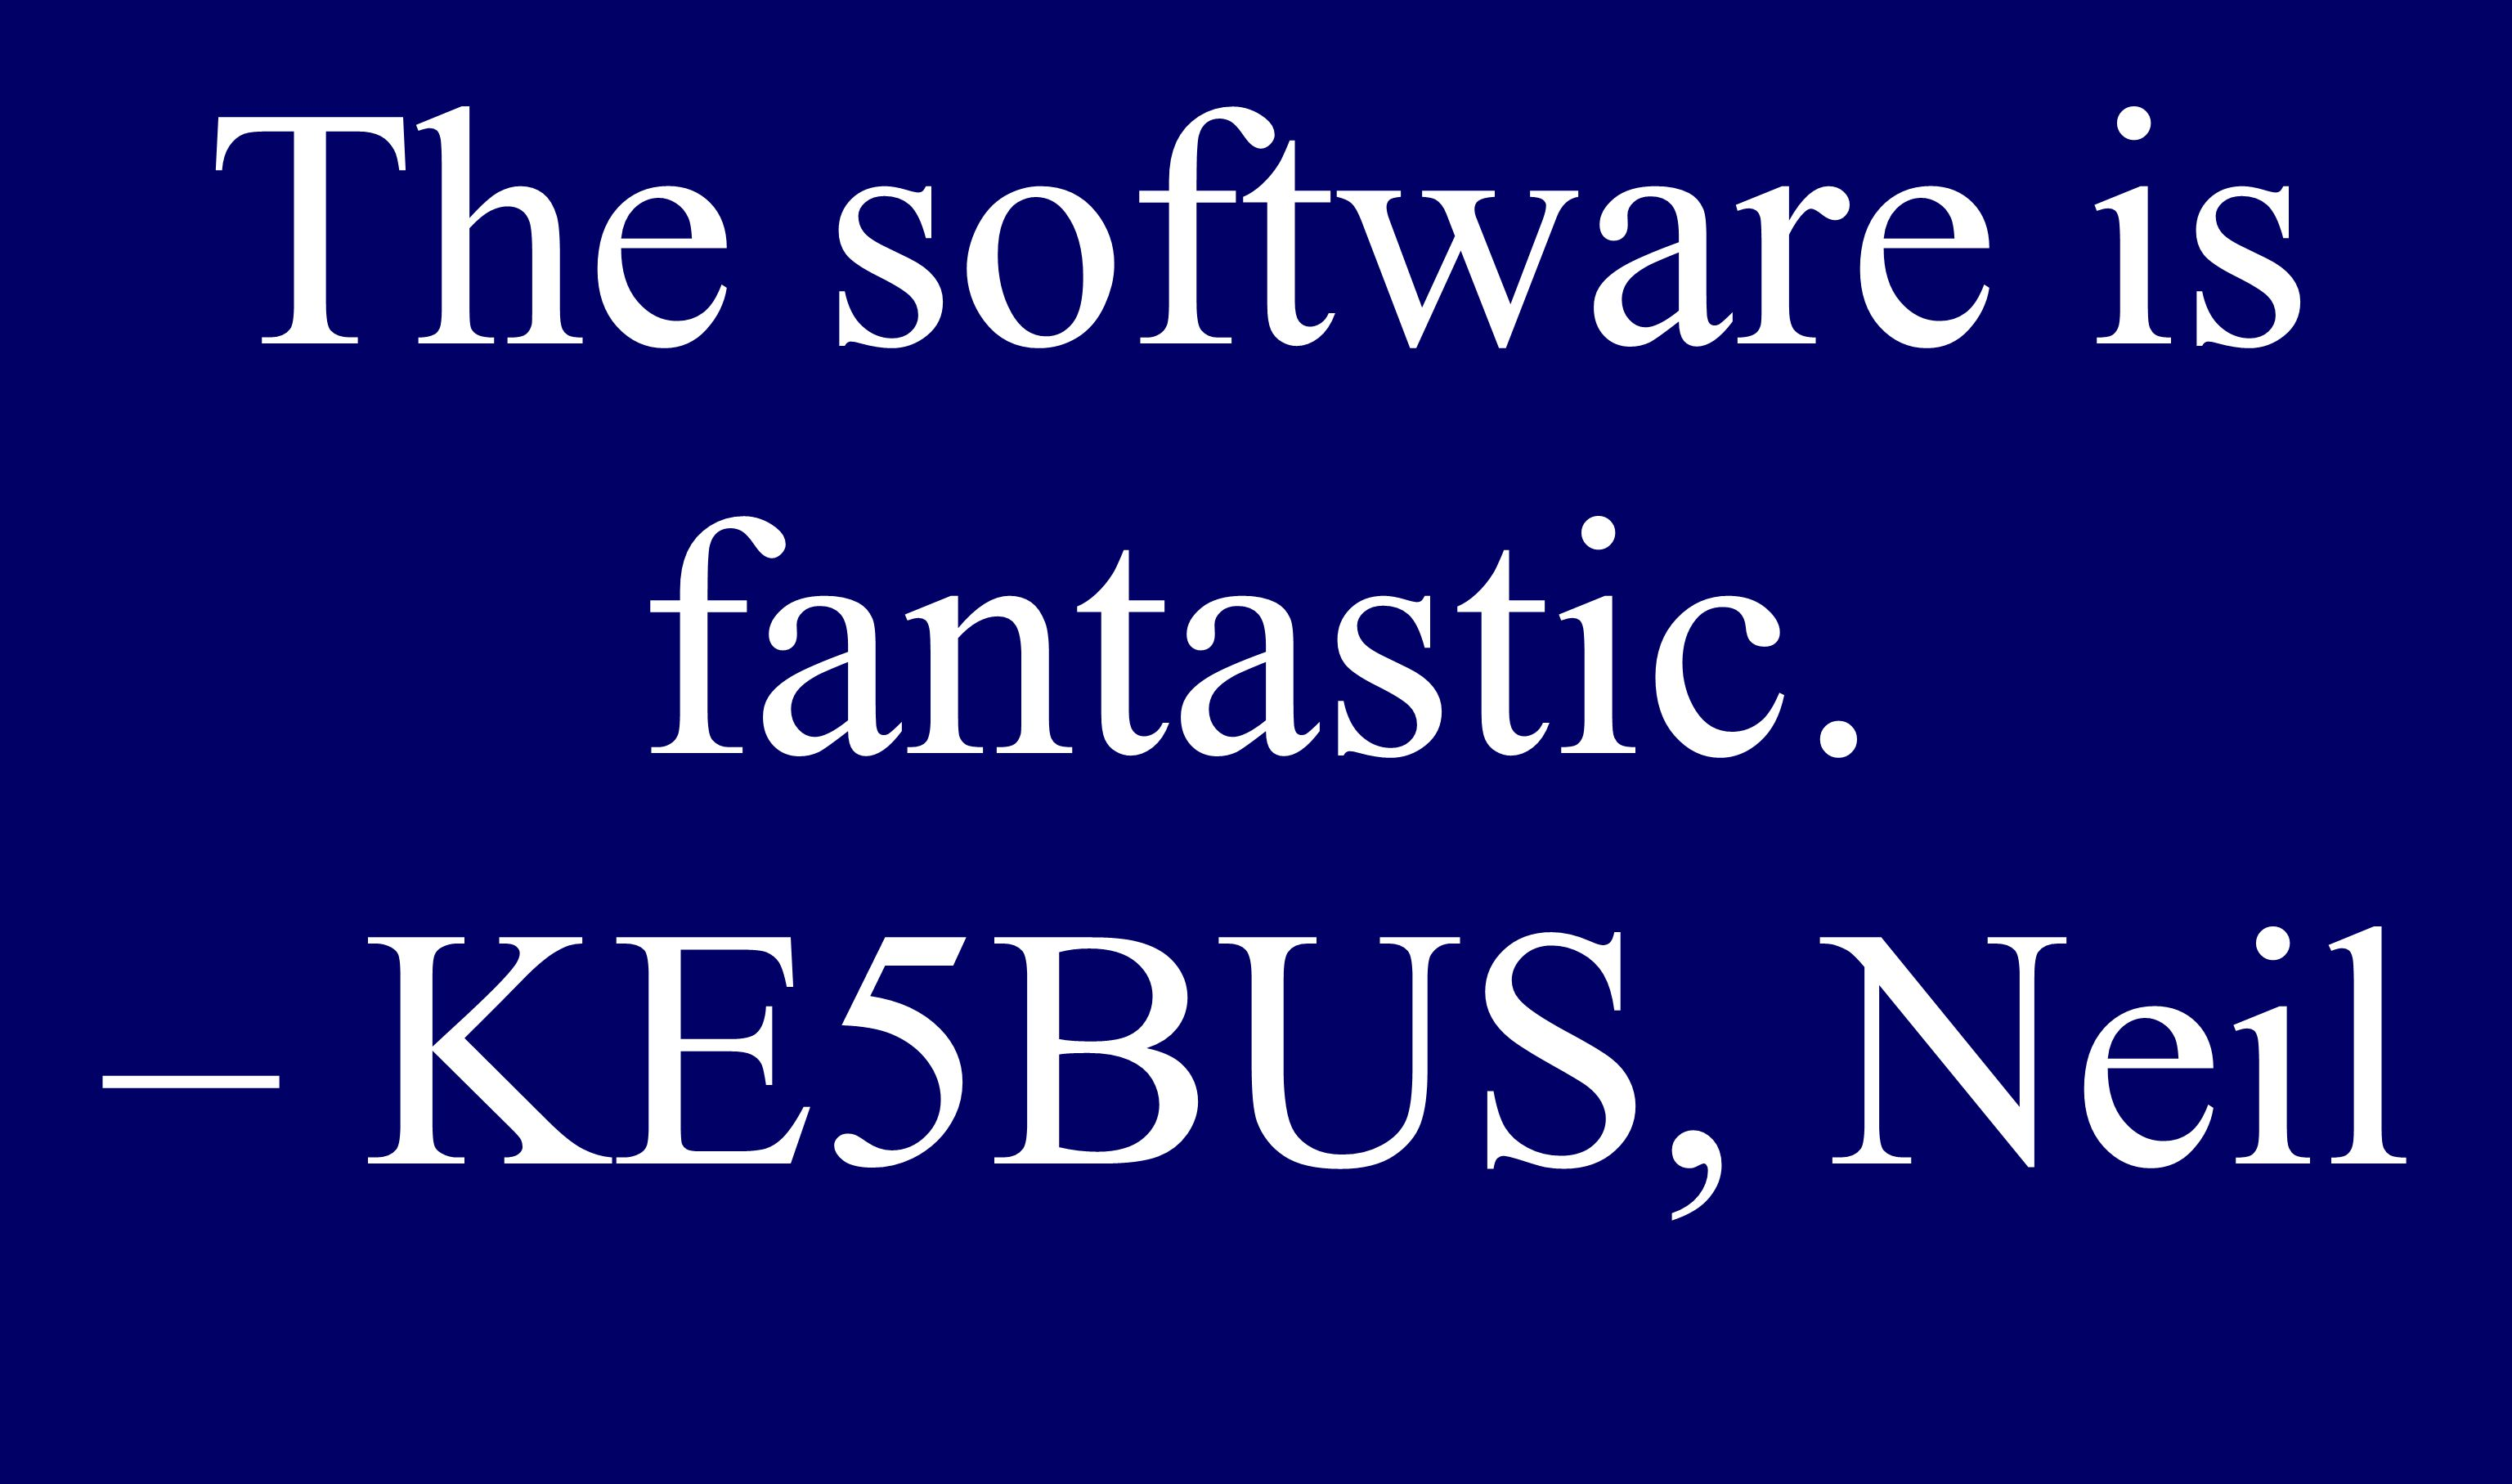 The software is fantastic. – KE5BUS, Neil